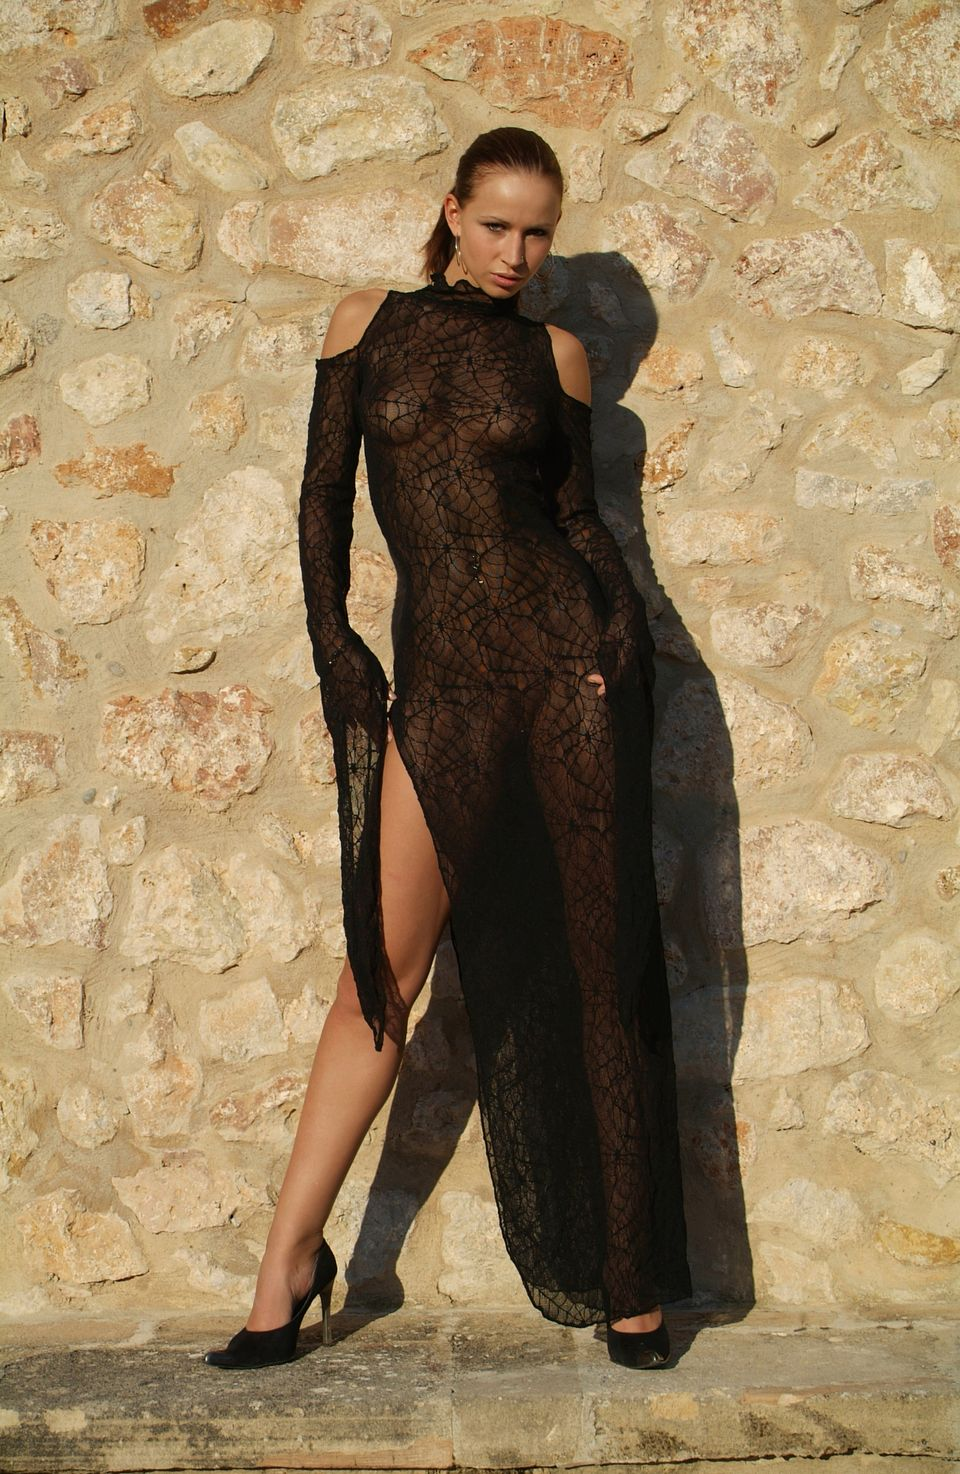 """@mrenzi1: """"A very tight black maxi dress with no bra. Her nipples were visible. Lovely."""""""